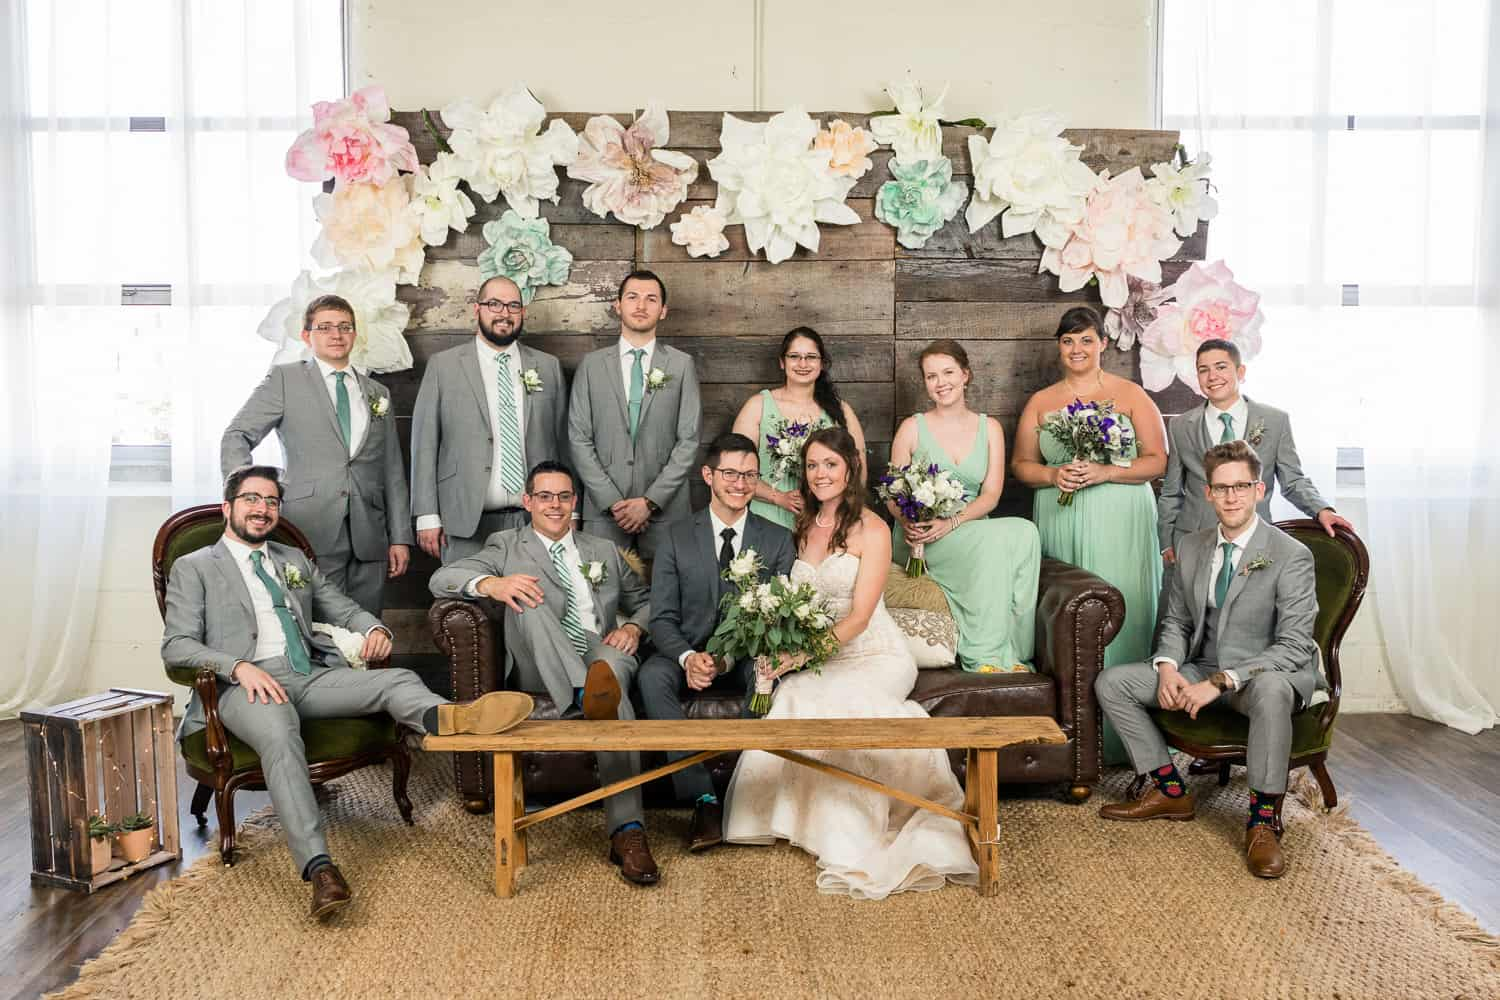 a wedding party portrait at arbor loft. there are large paper flowers above the people.